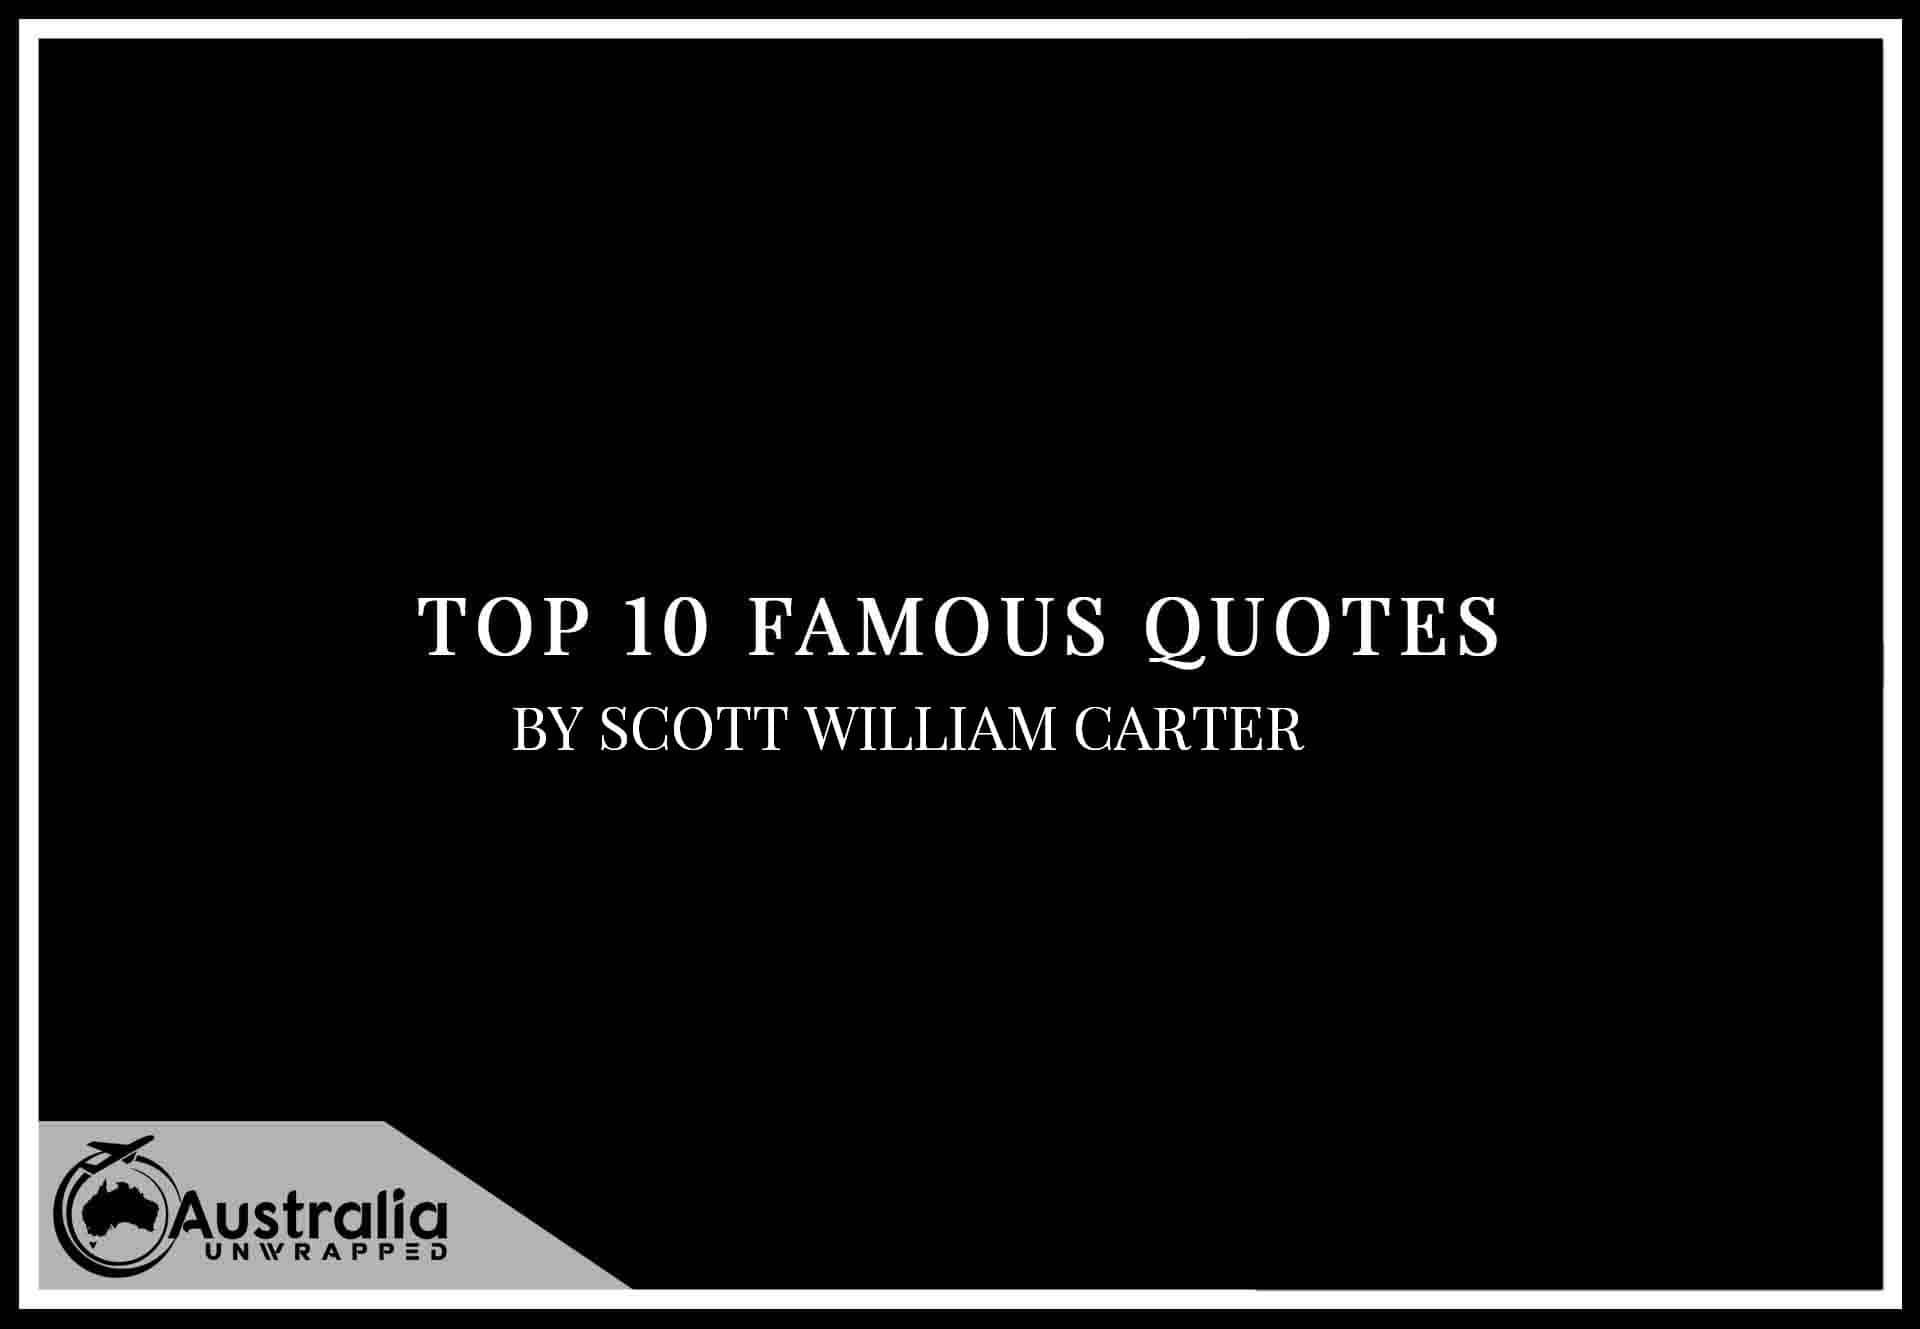 Top 10 Famous Quotes by Author Scott William Carter